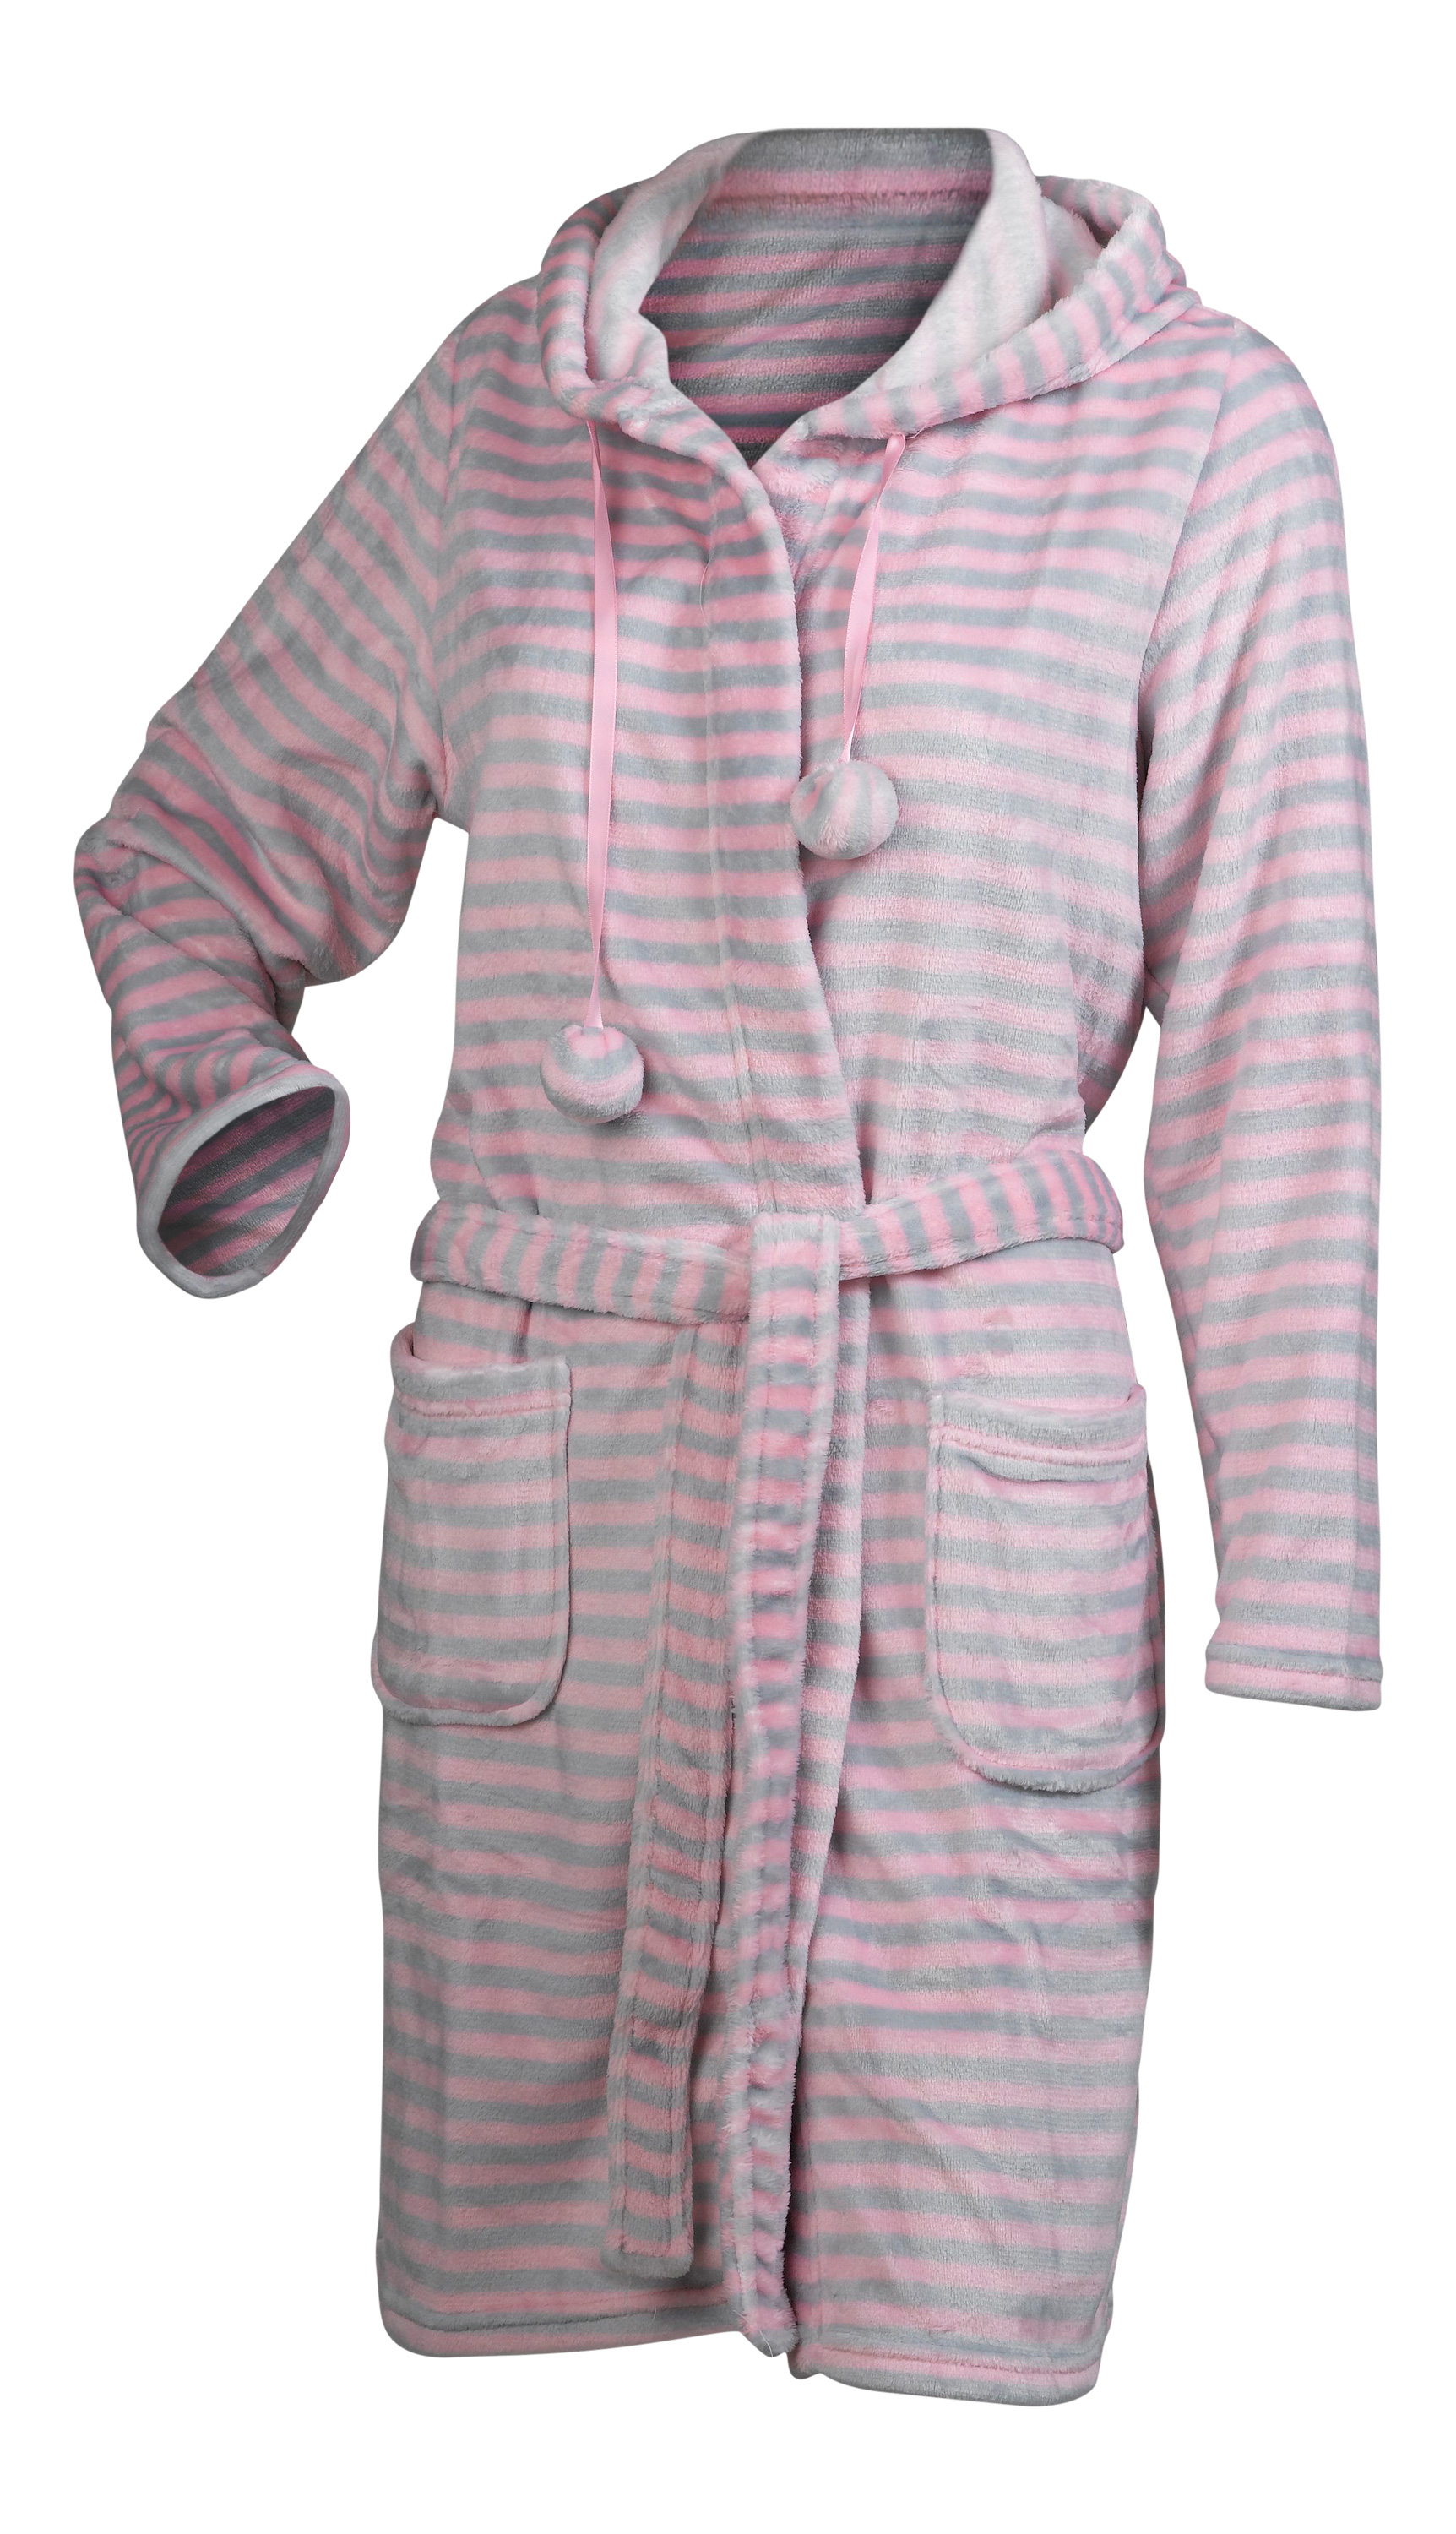 Ladies Dressing Gown Super Soft Striped Fleece Womens Hooded Wrap ... e3764b656